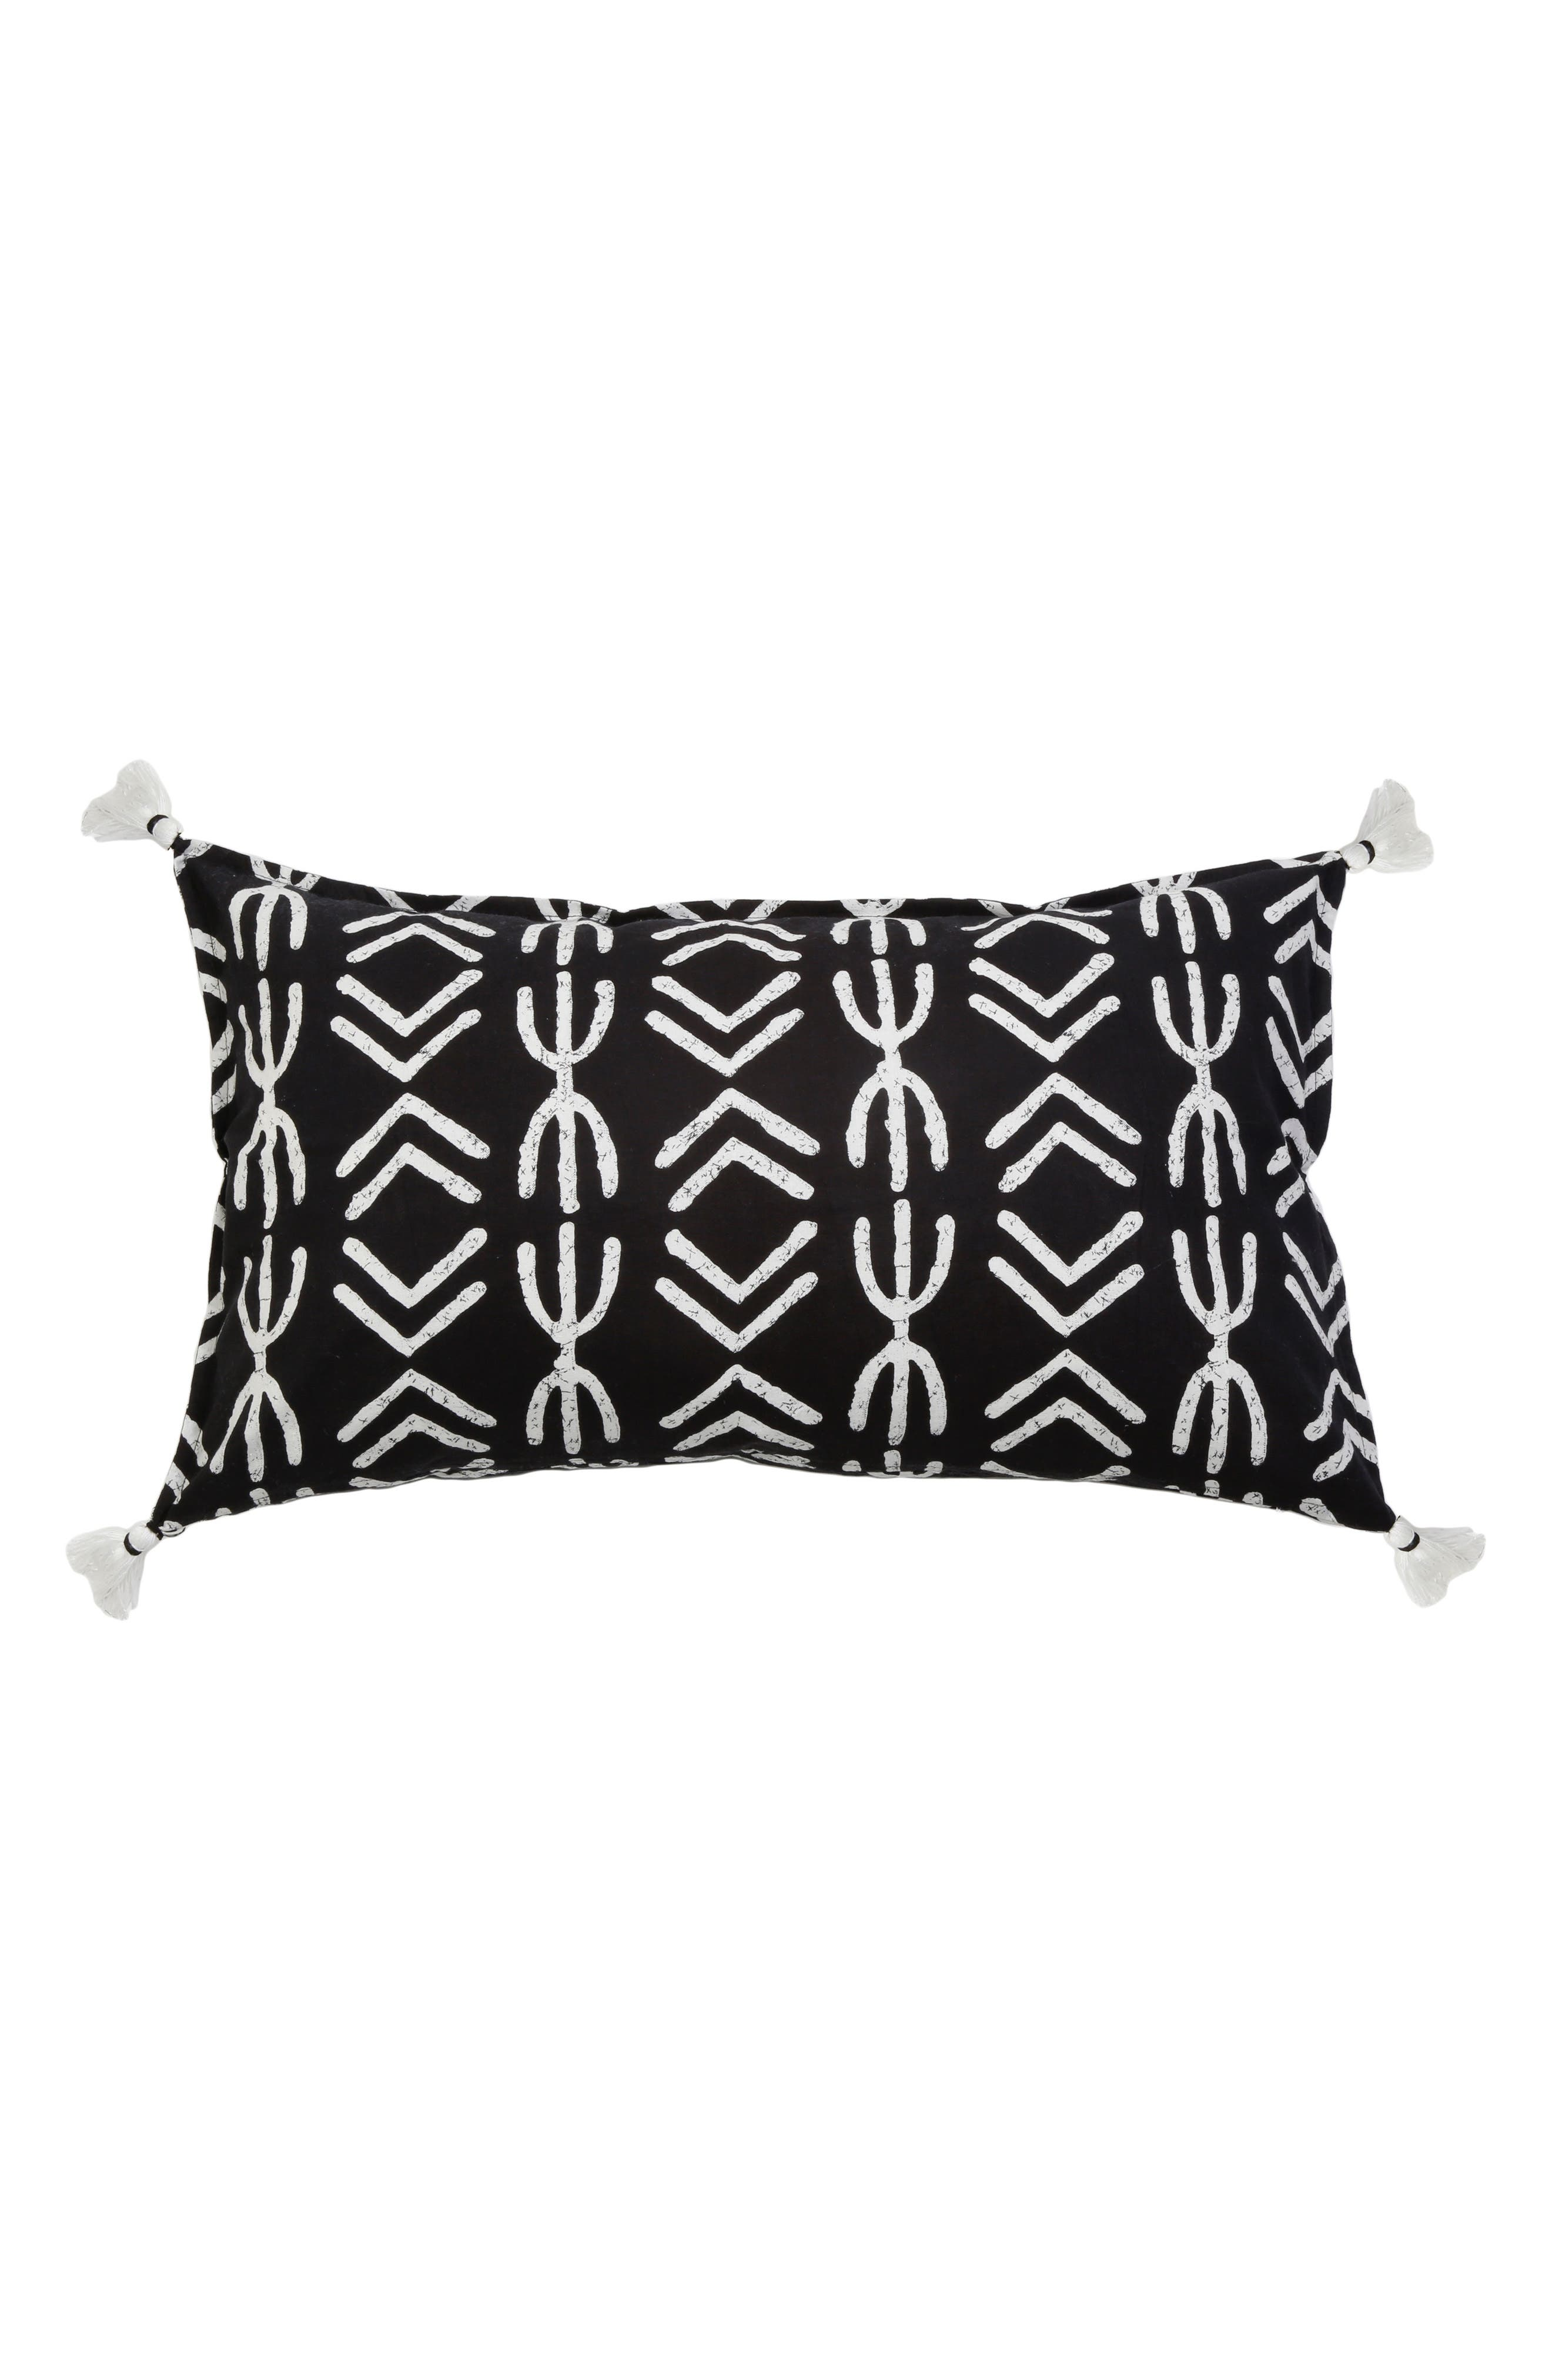 Pom Pom at Home Spear Accent Pillow